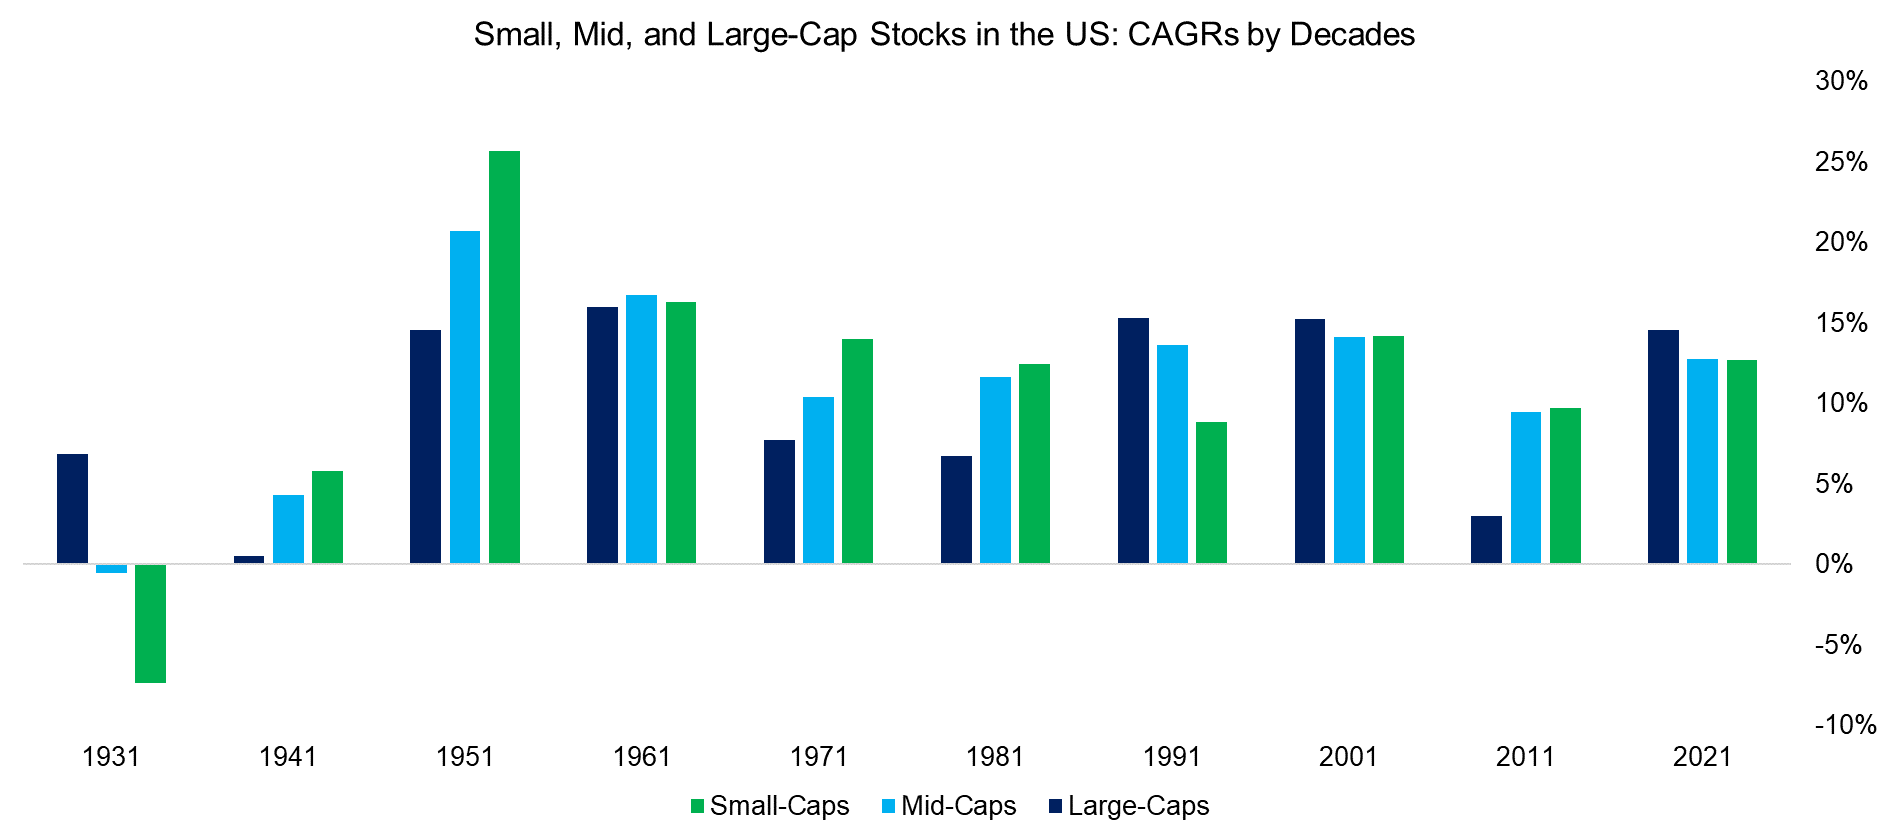 Small, Mid, and Large-Cap Stocks in the US CAGRs by Decades